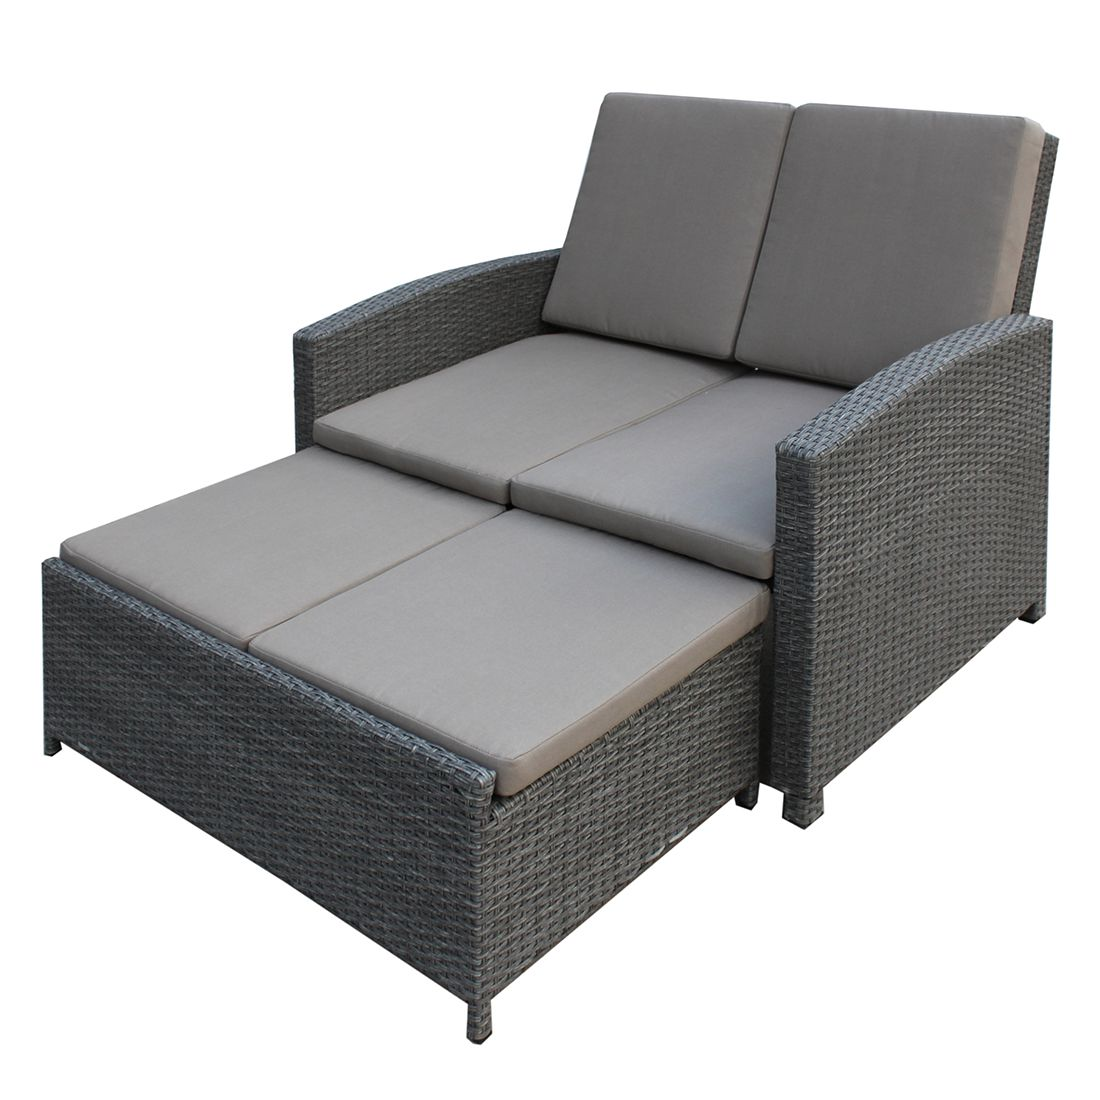 gartensofa villanova inkl hocker polyrattan grau. Black Bedroom Furniture Sets. Home Design Ideas